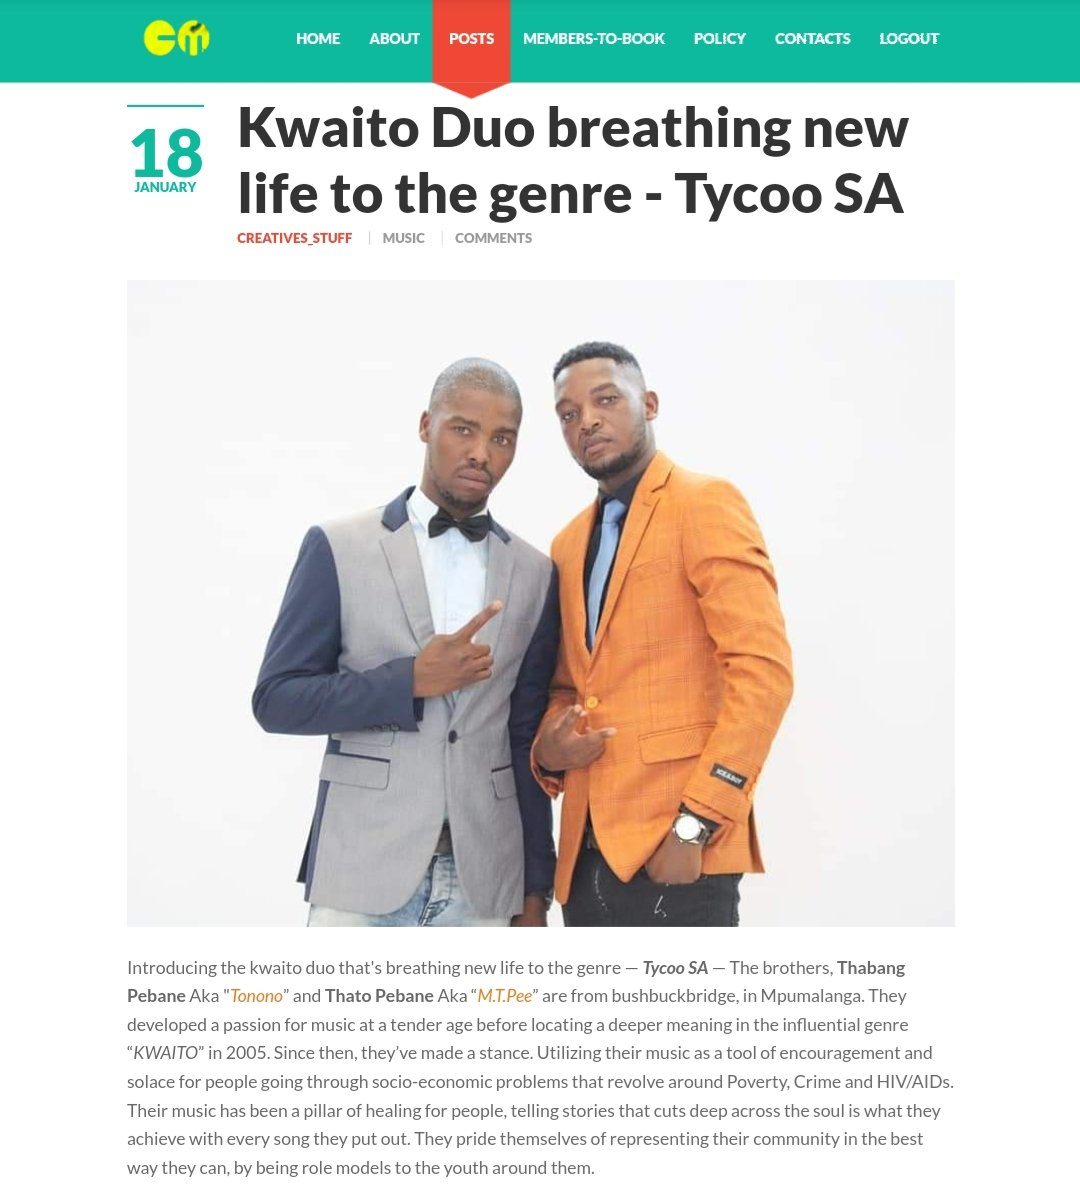 kwaito duo breathing new life to the genre - @Tycoo_SA - They developed a passion for Kwaito music at a tender age, Utilizing their music as a tool of encouragement and solace for people going through socio-economic problems. Read -   #COVID19 #gomora #SA